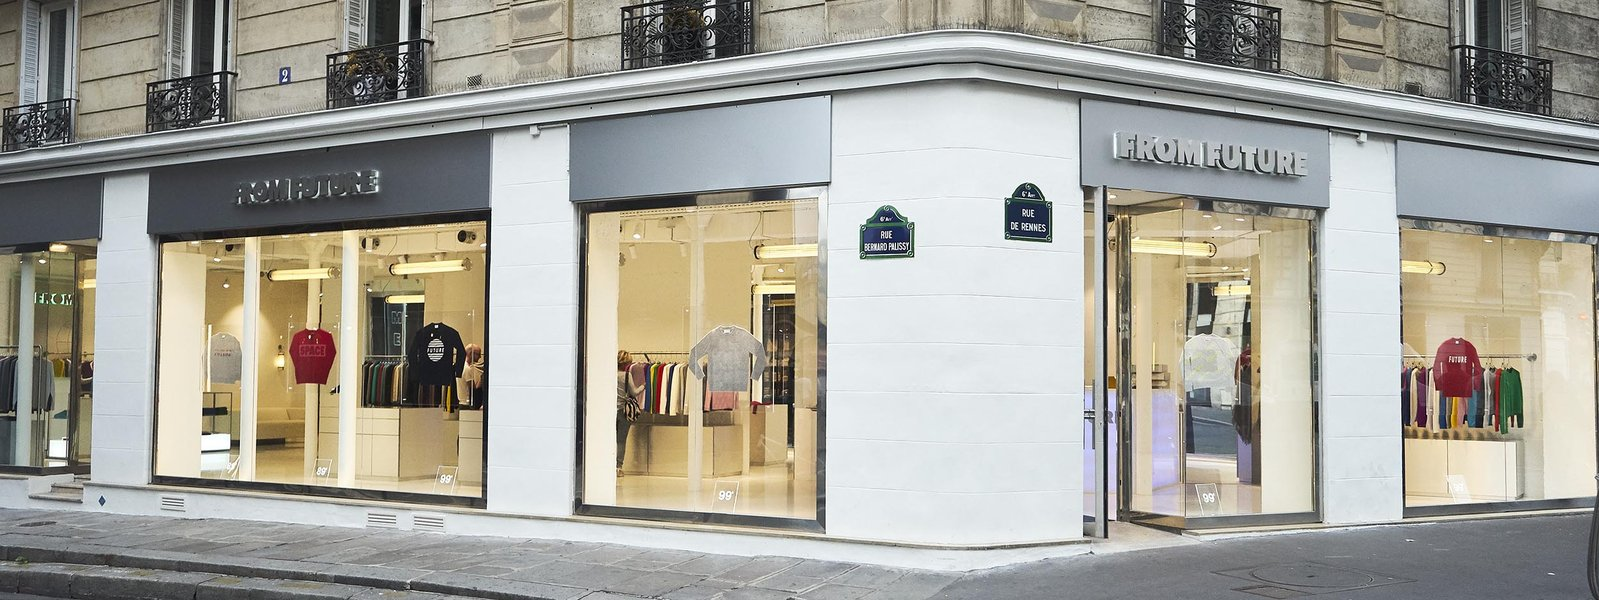 The From Future flagship store at 54 Rue de Rennes Paris 75006